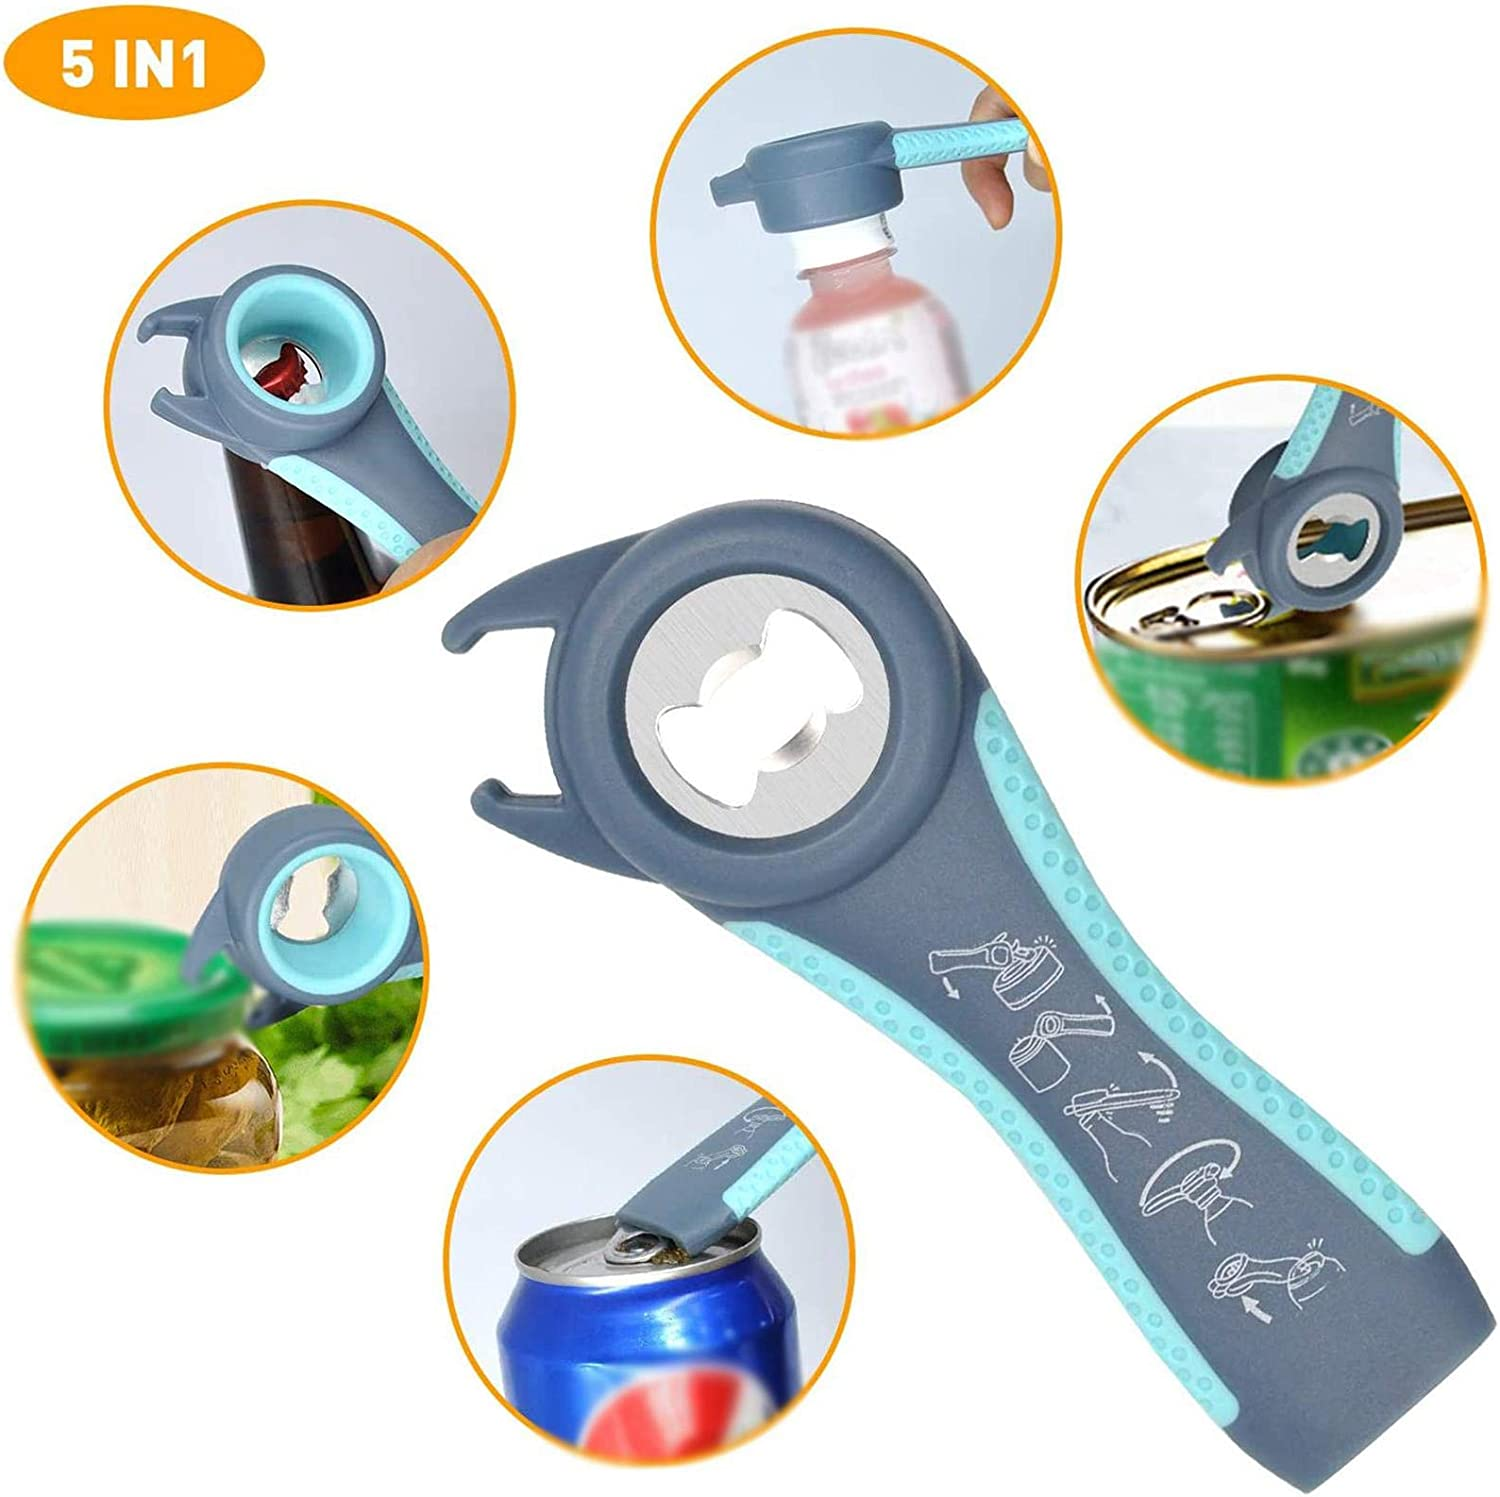 Premium 6-in-1 multi opener and 5-in-1 Jar and Bottle Opener Ideal for Seniors Arthritis Suffers and Weak Hands black